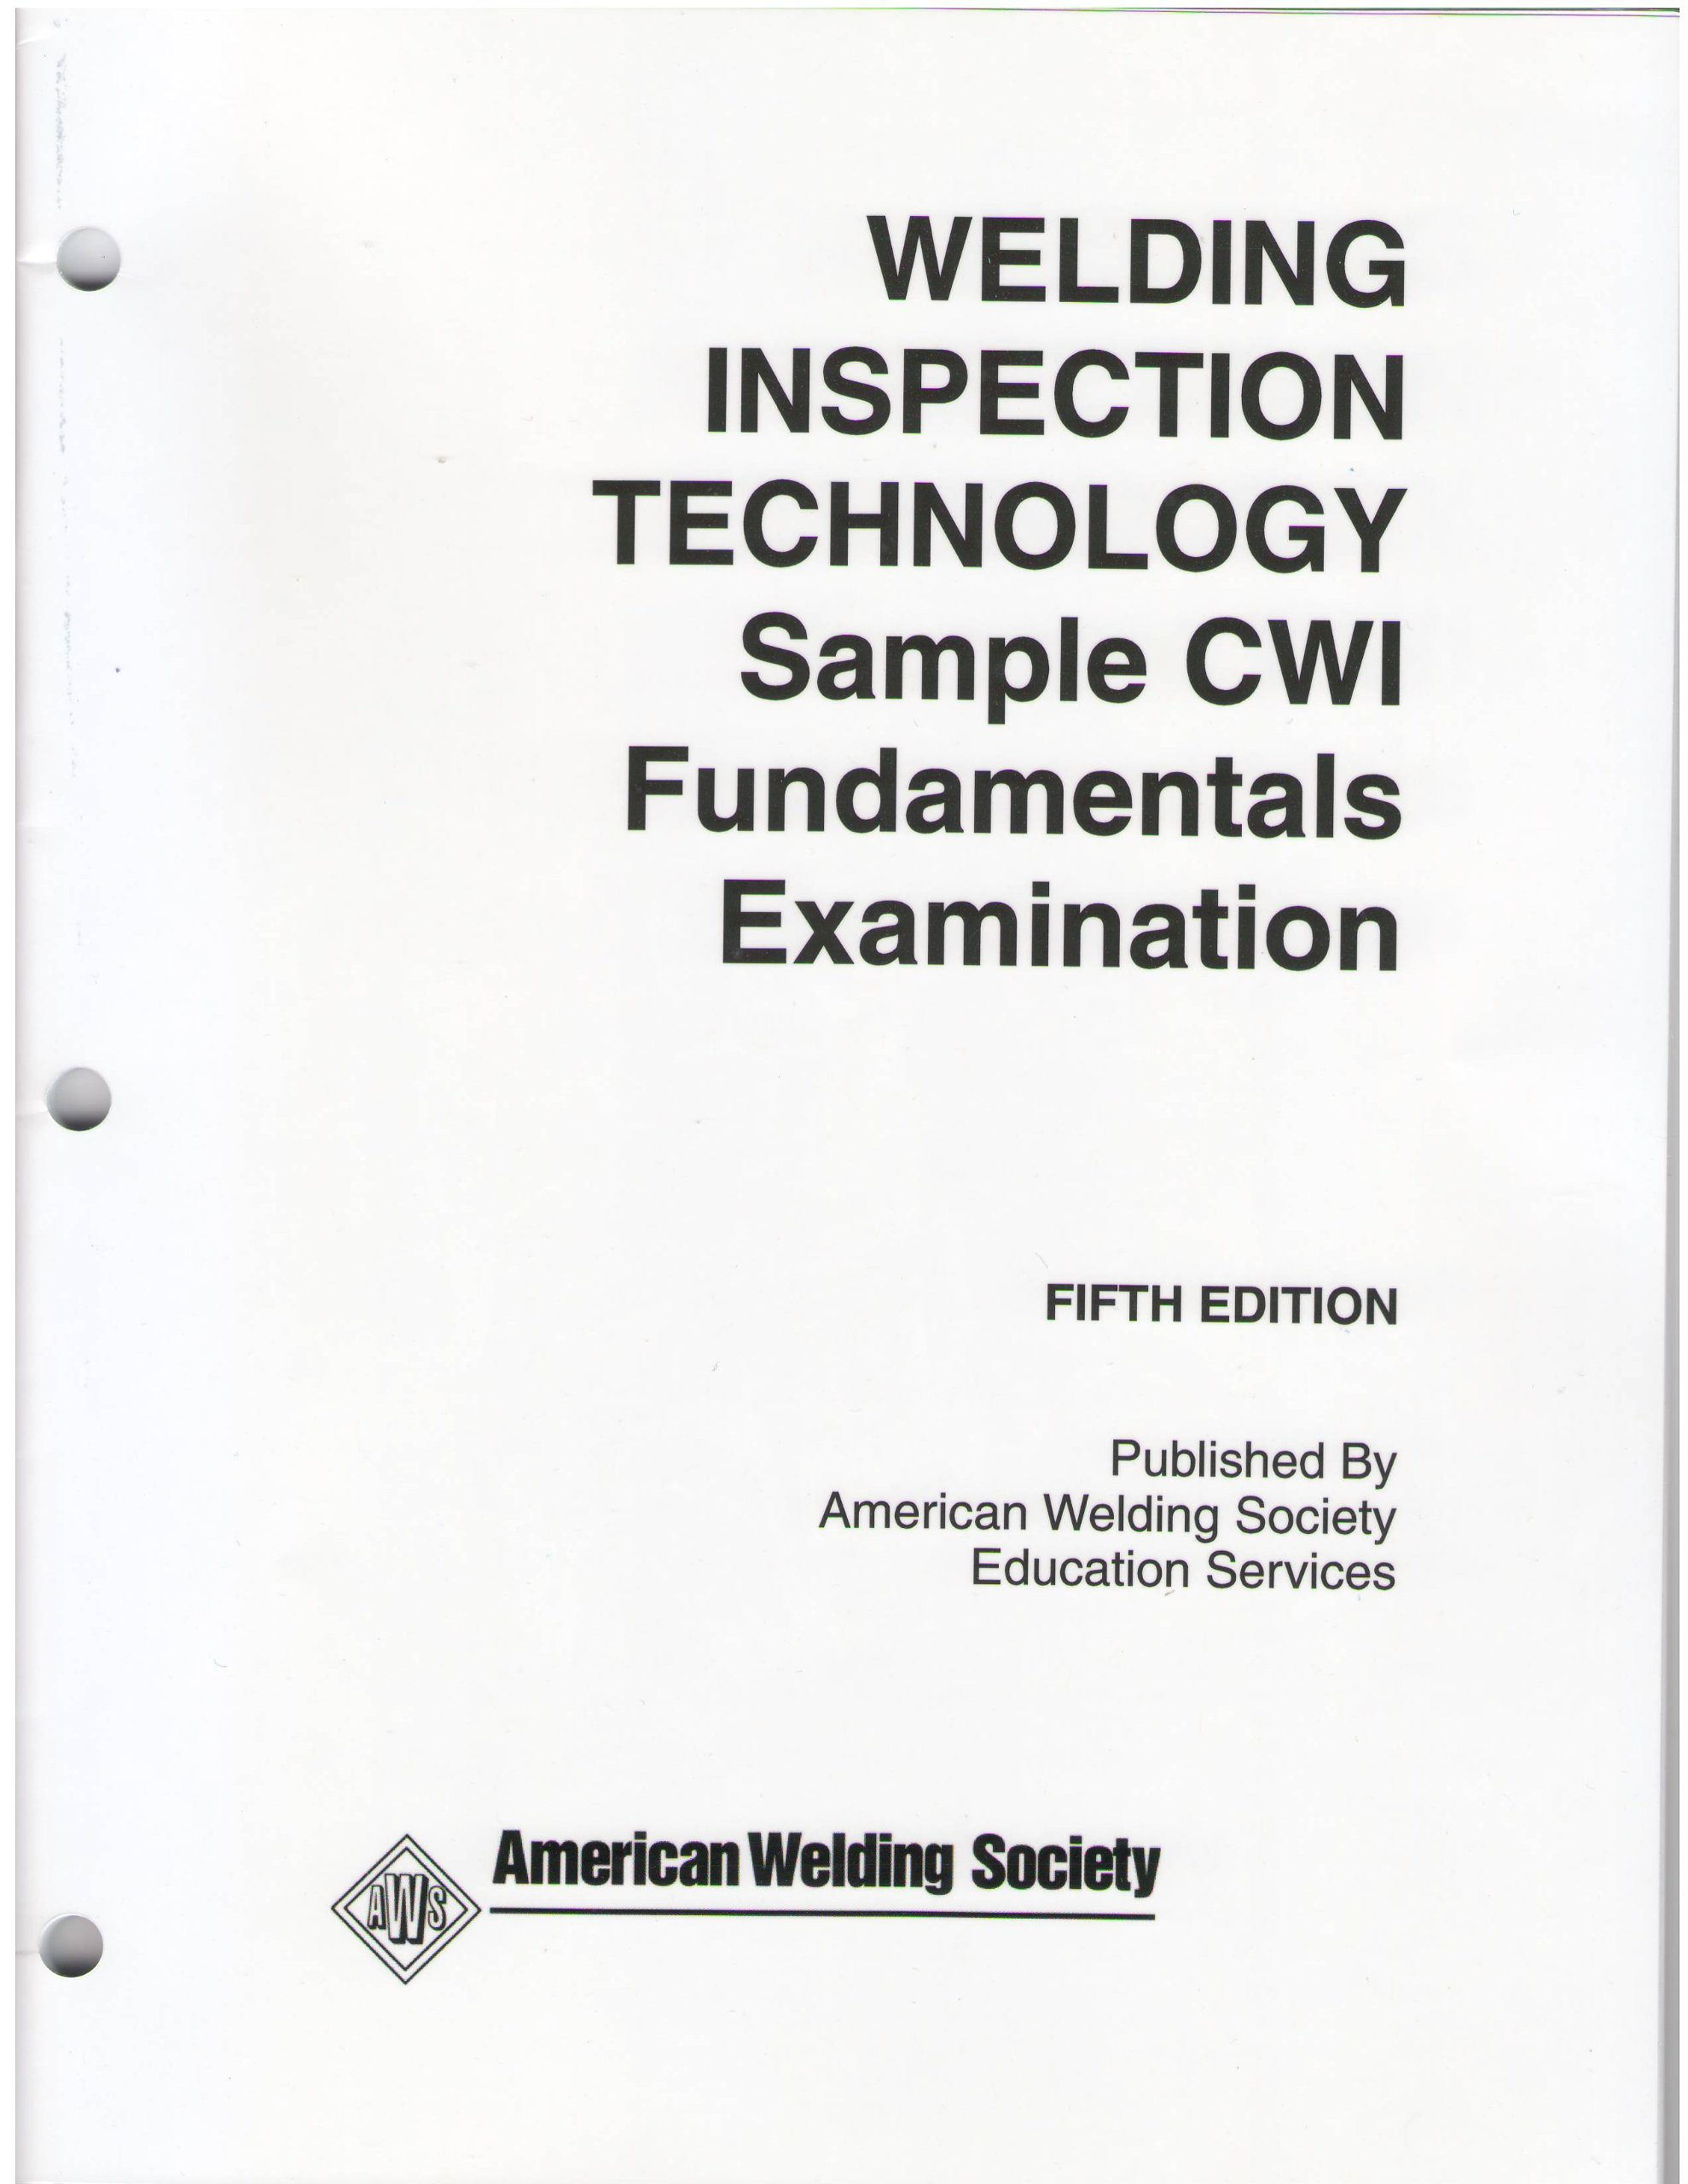 Welding inspection technology sample cwi fundamentals examination welding inspection technology sample cwi fundamentals examination welding inspection sample cwi fundamentals examinations fifth edition american welding fandeluxe Choice Image